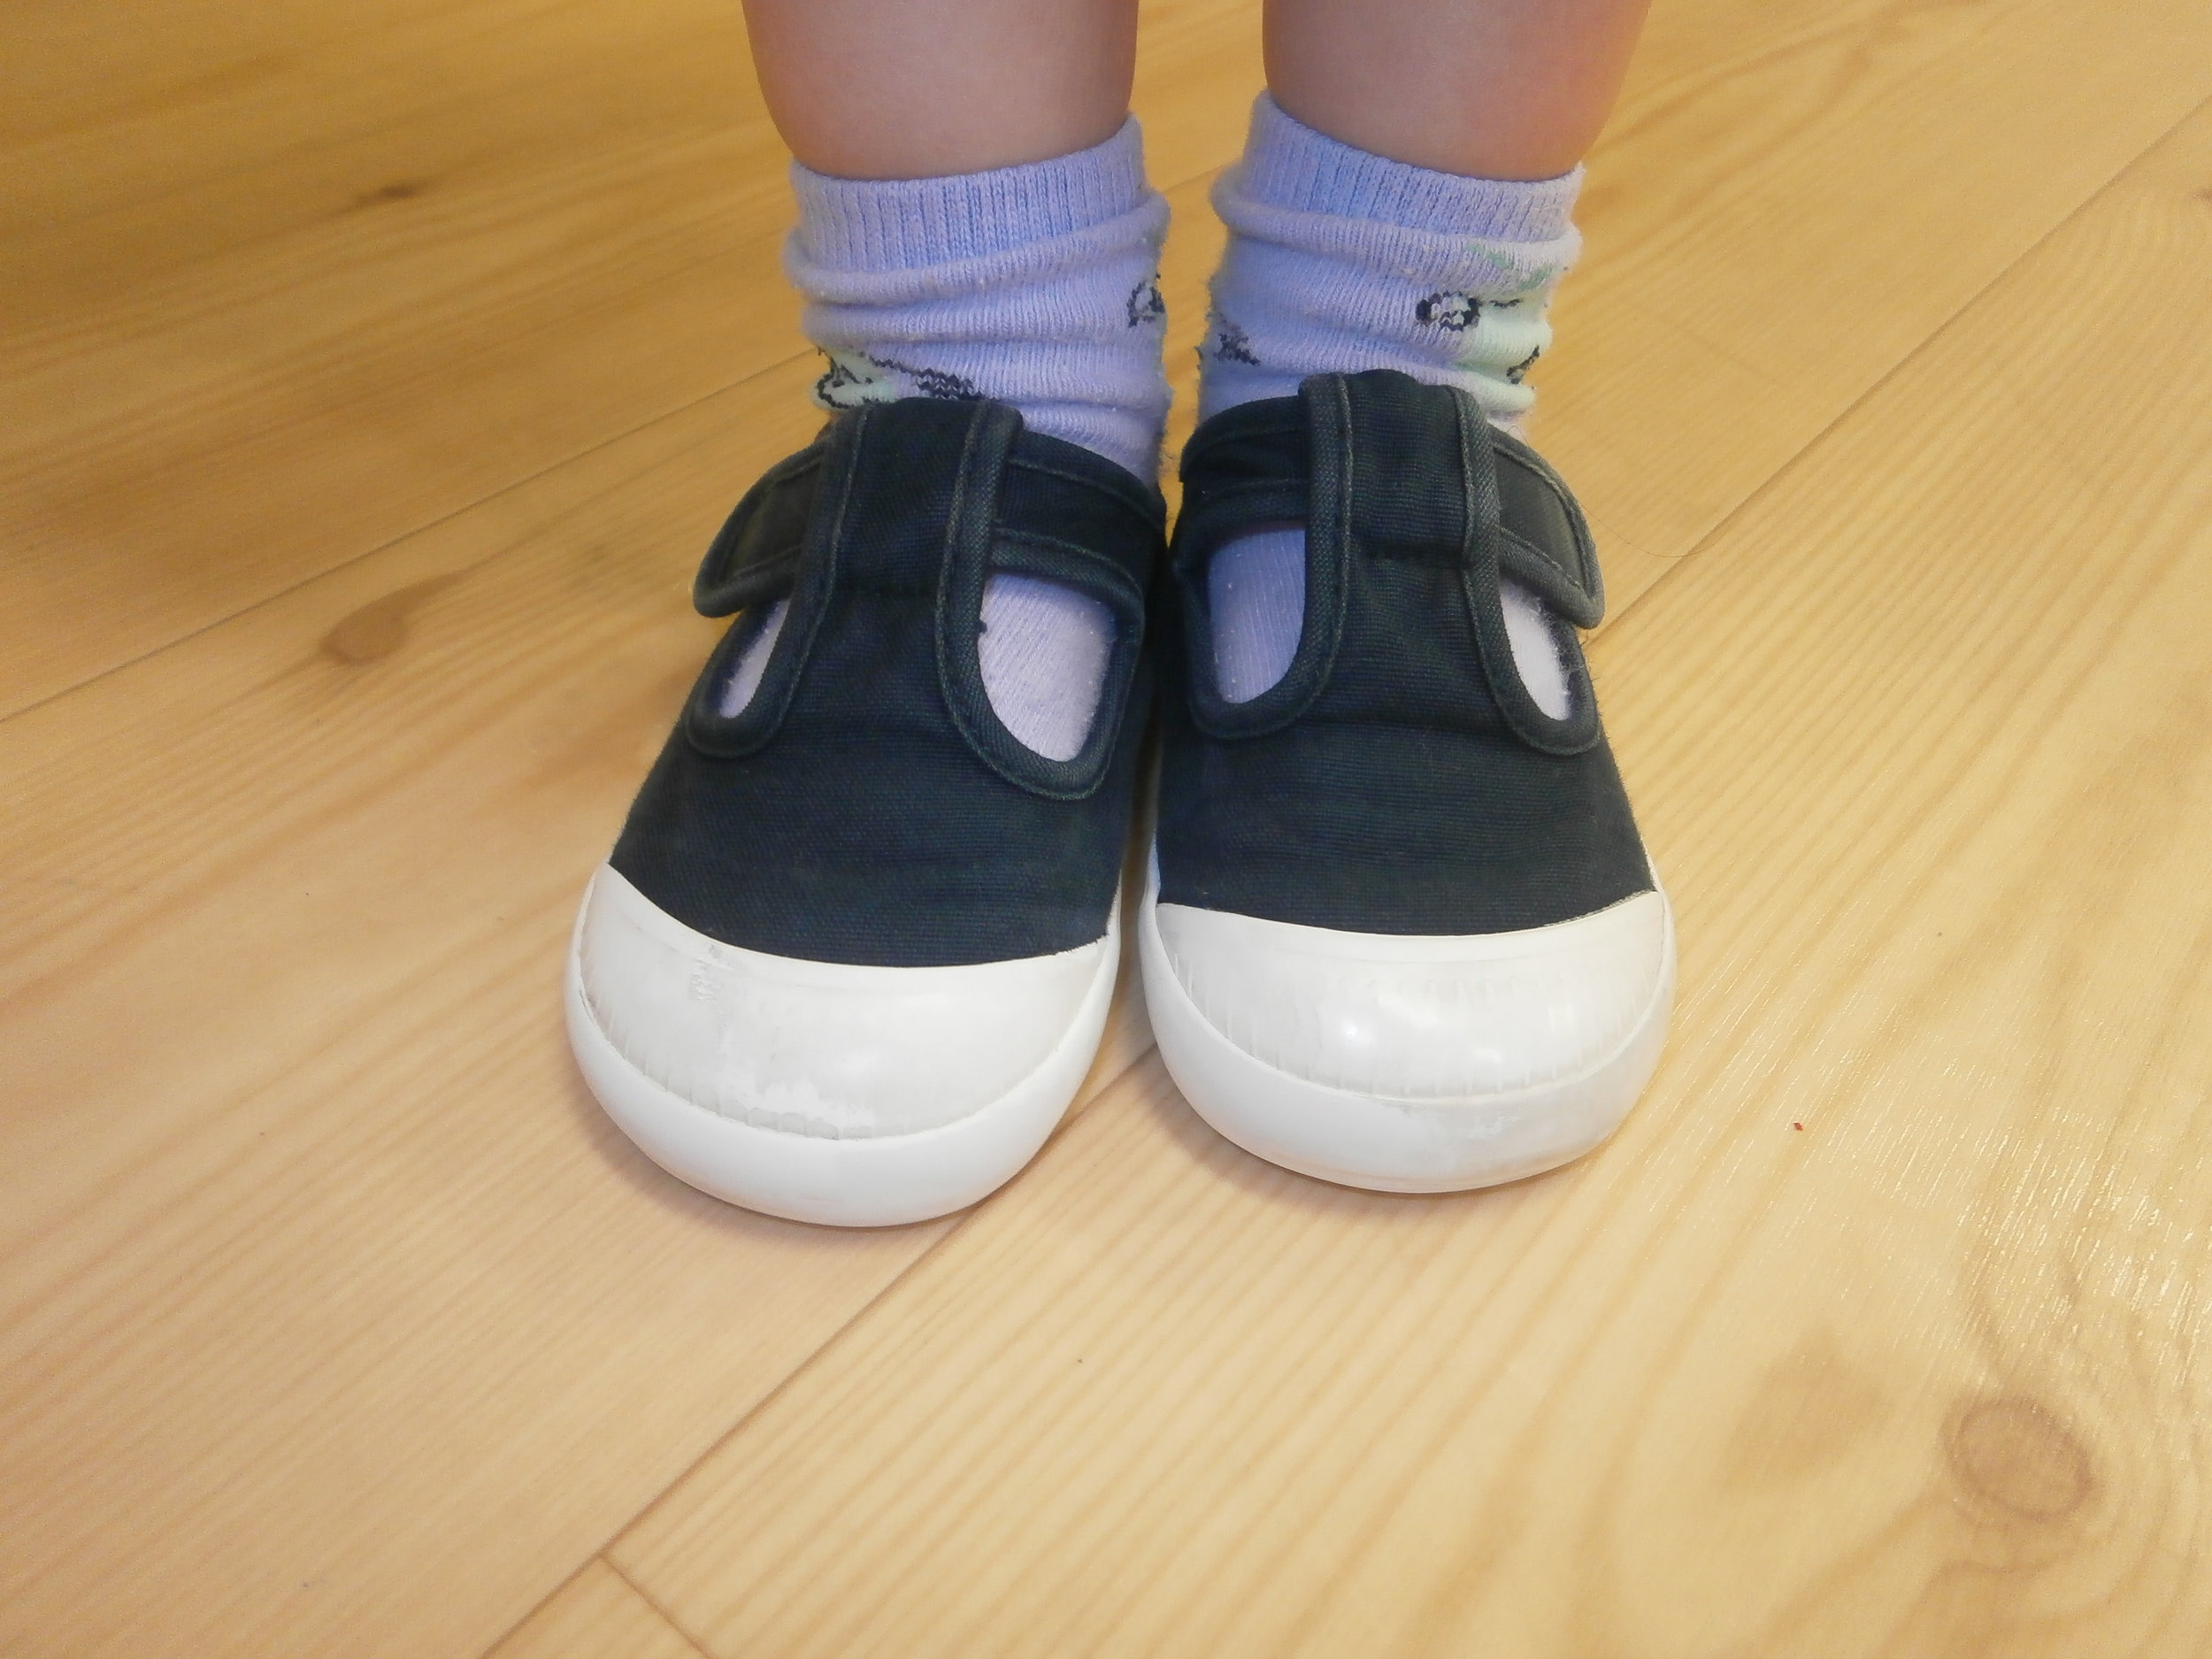 We took a photo of Rupert's indoor shoes for our new Morning Jobs poster